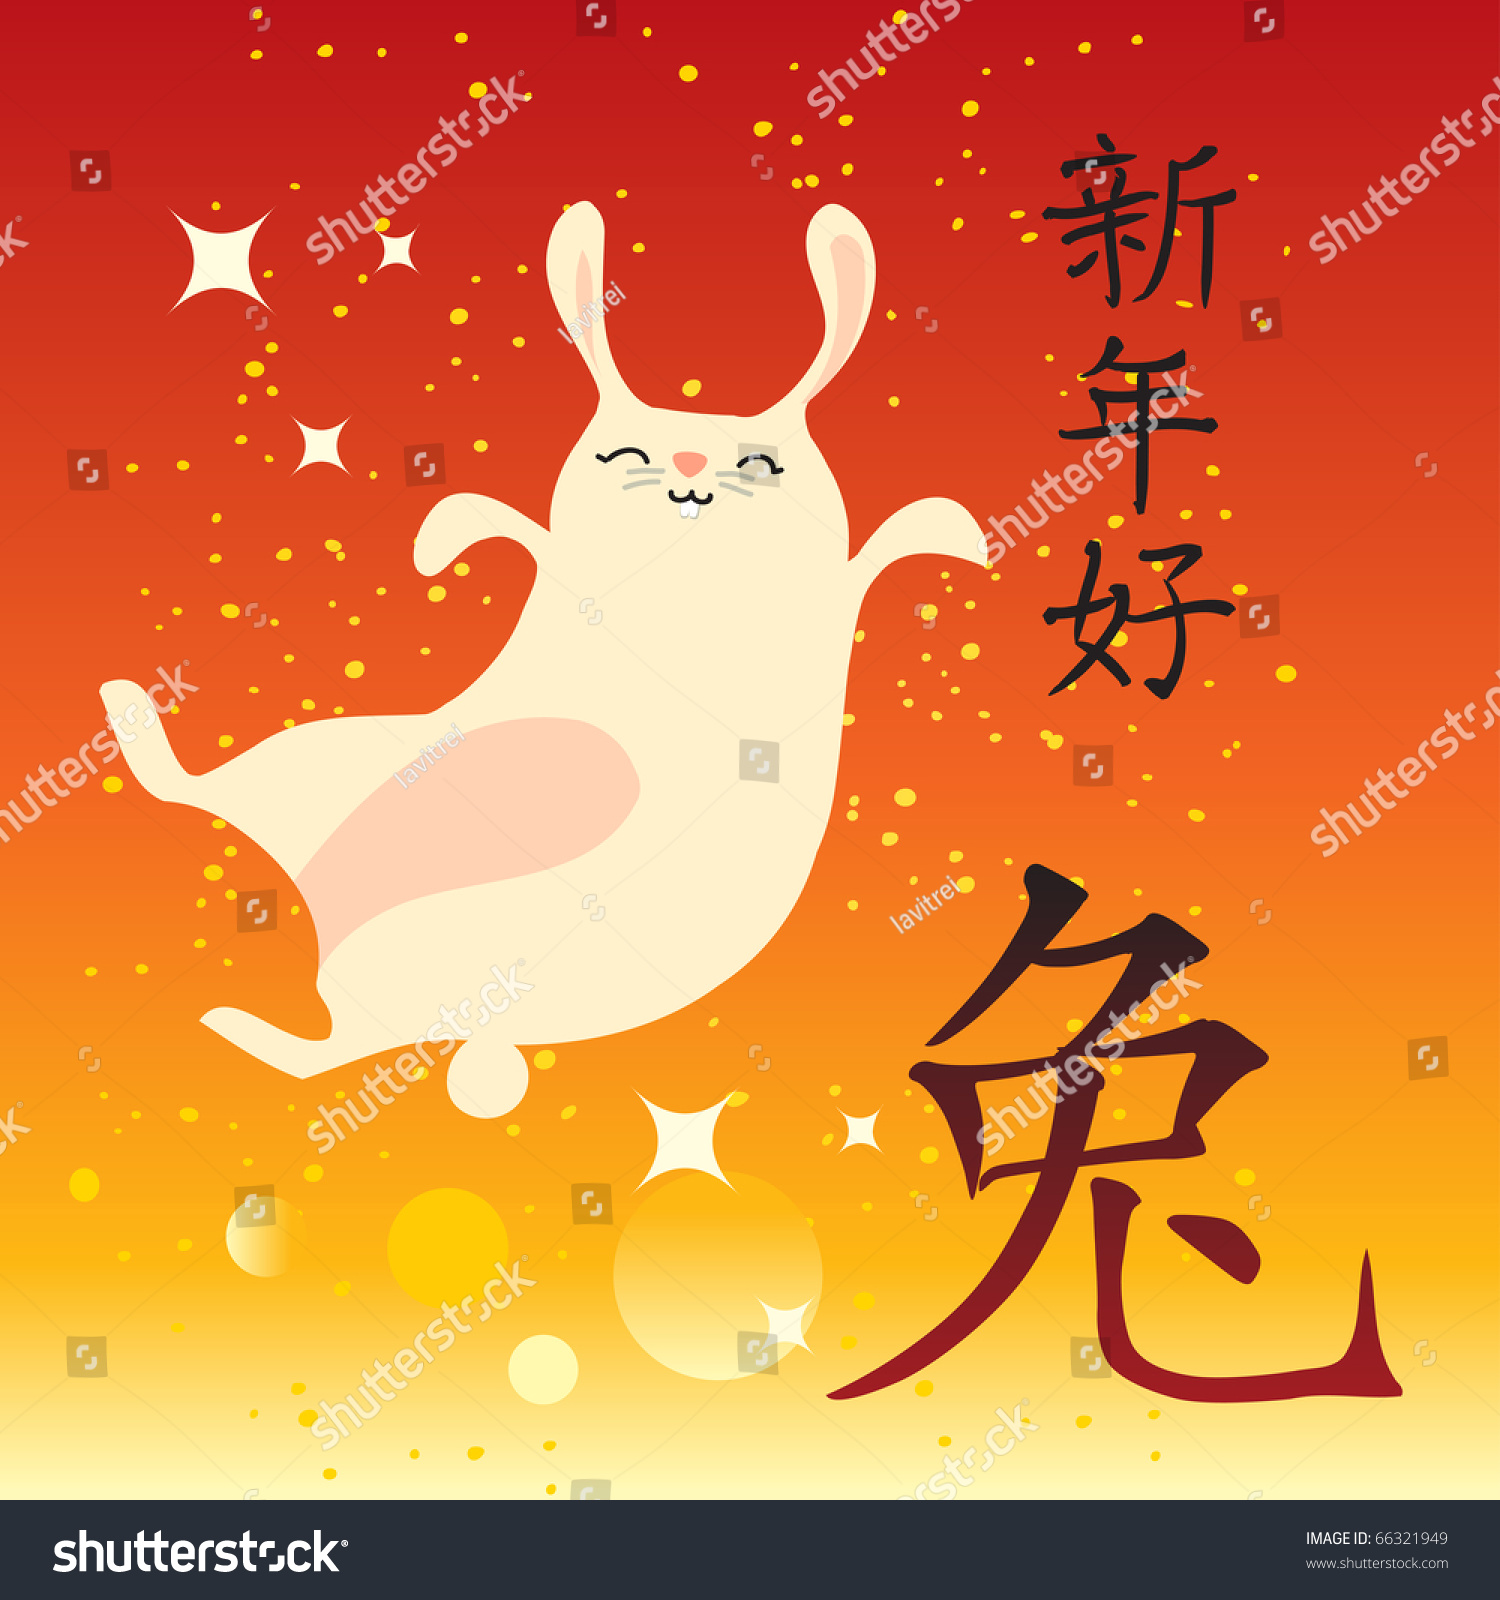 How to write happy year of the rabbit in chinese